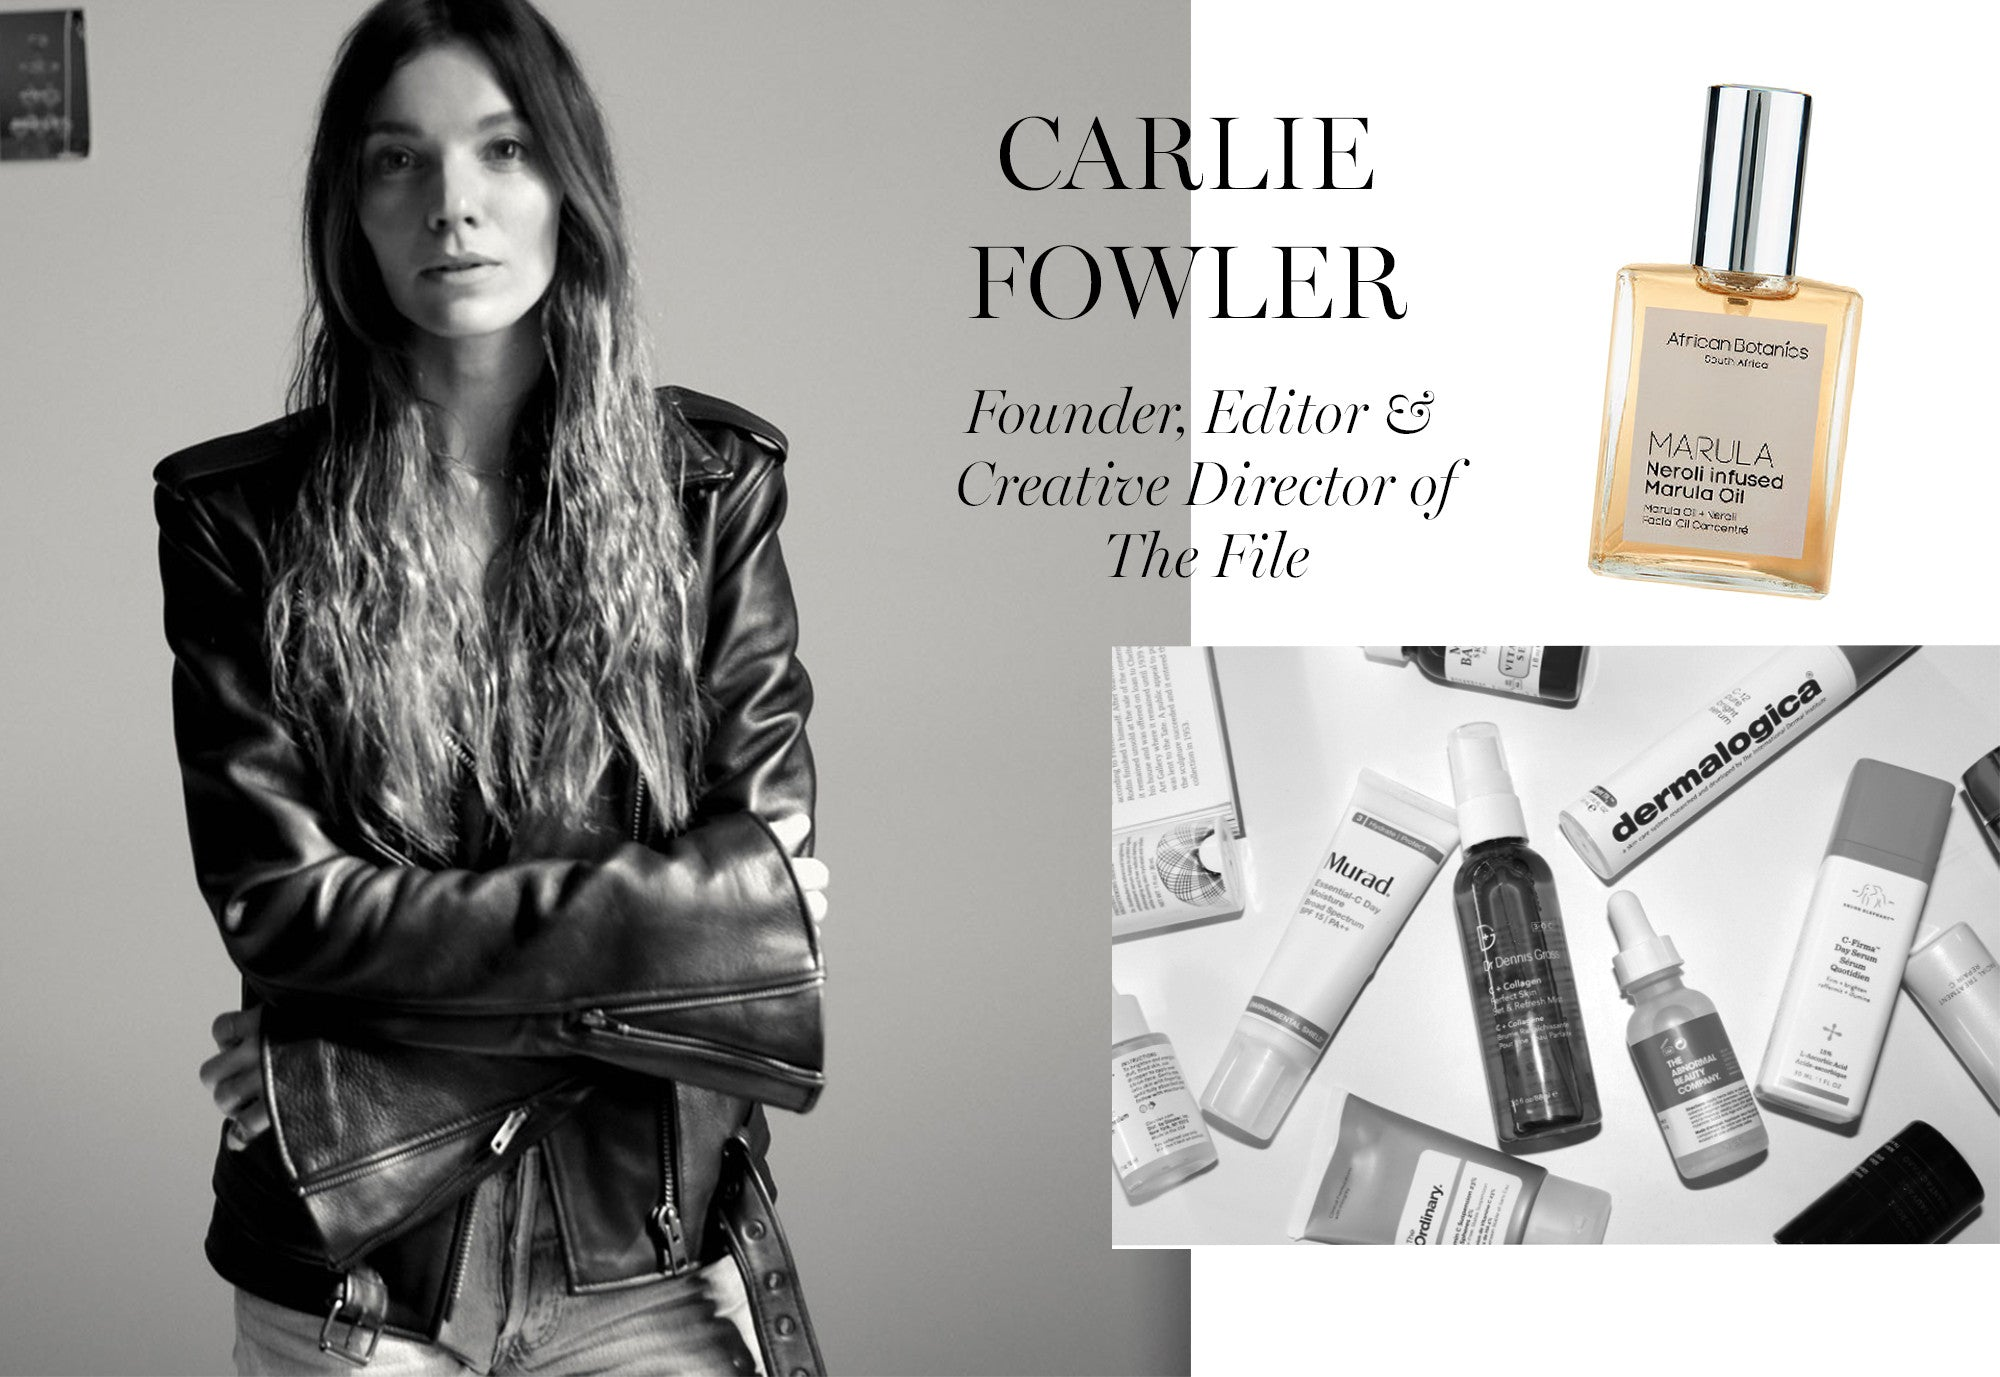 Carlie Fowler, Founder, Editor and Creative Director of The File